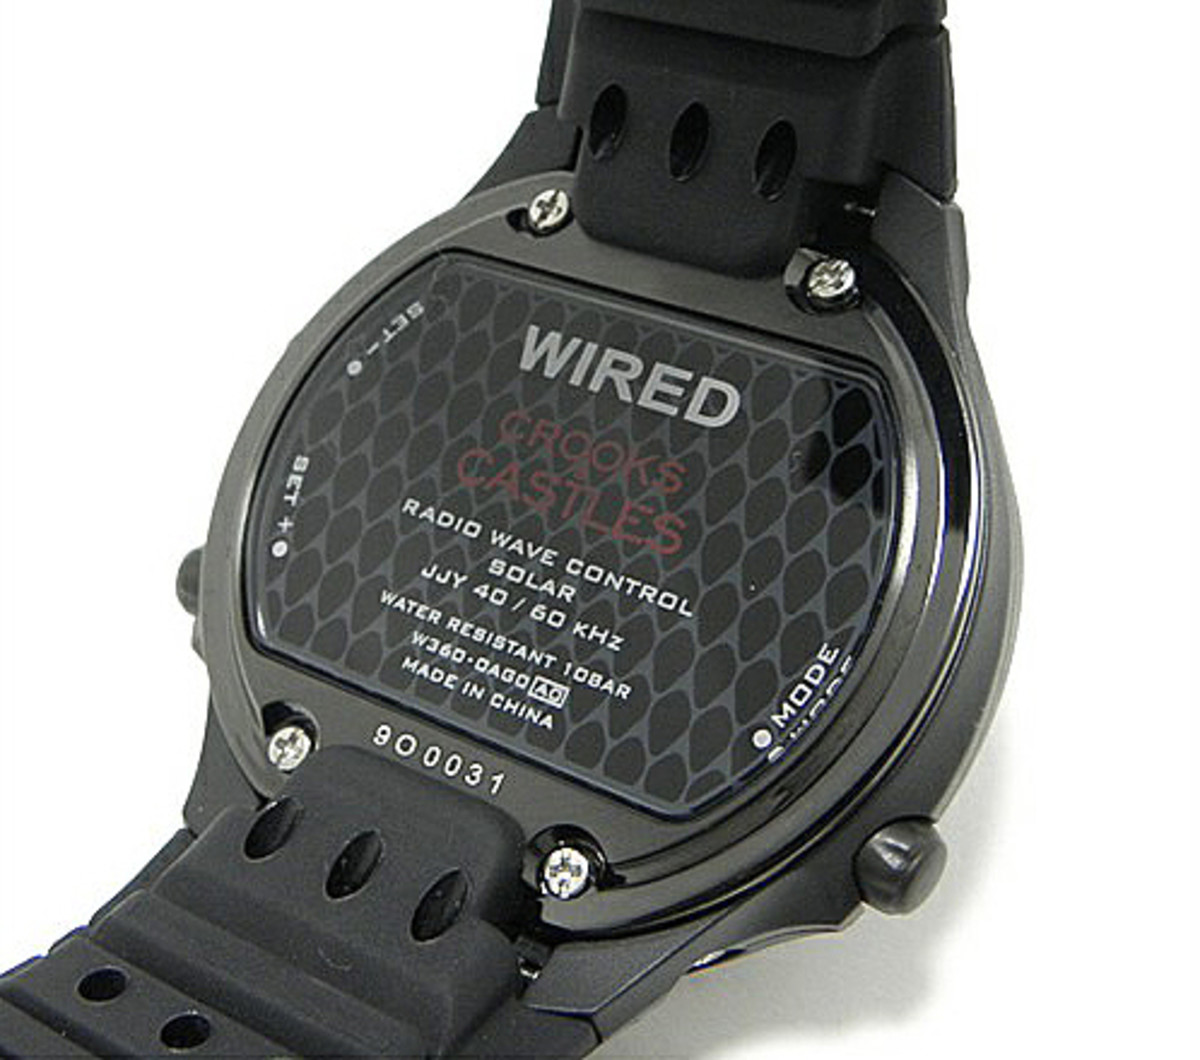 crooks-castles-seiko-wired-h-watch-05